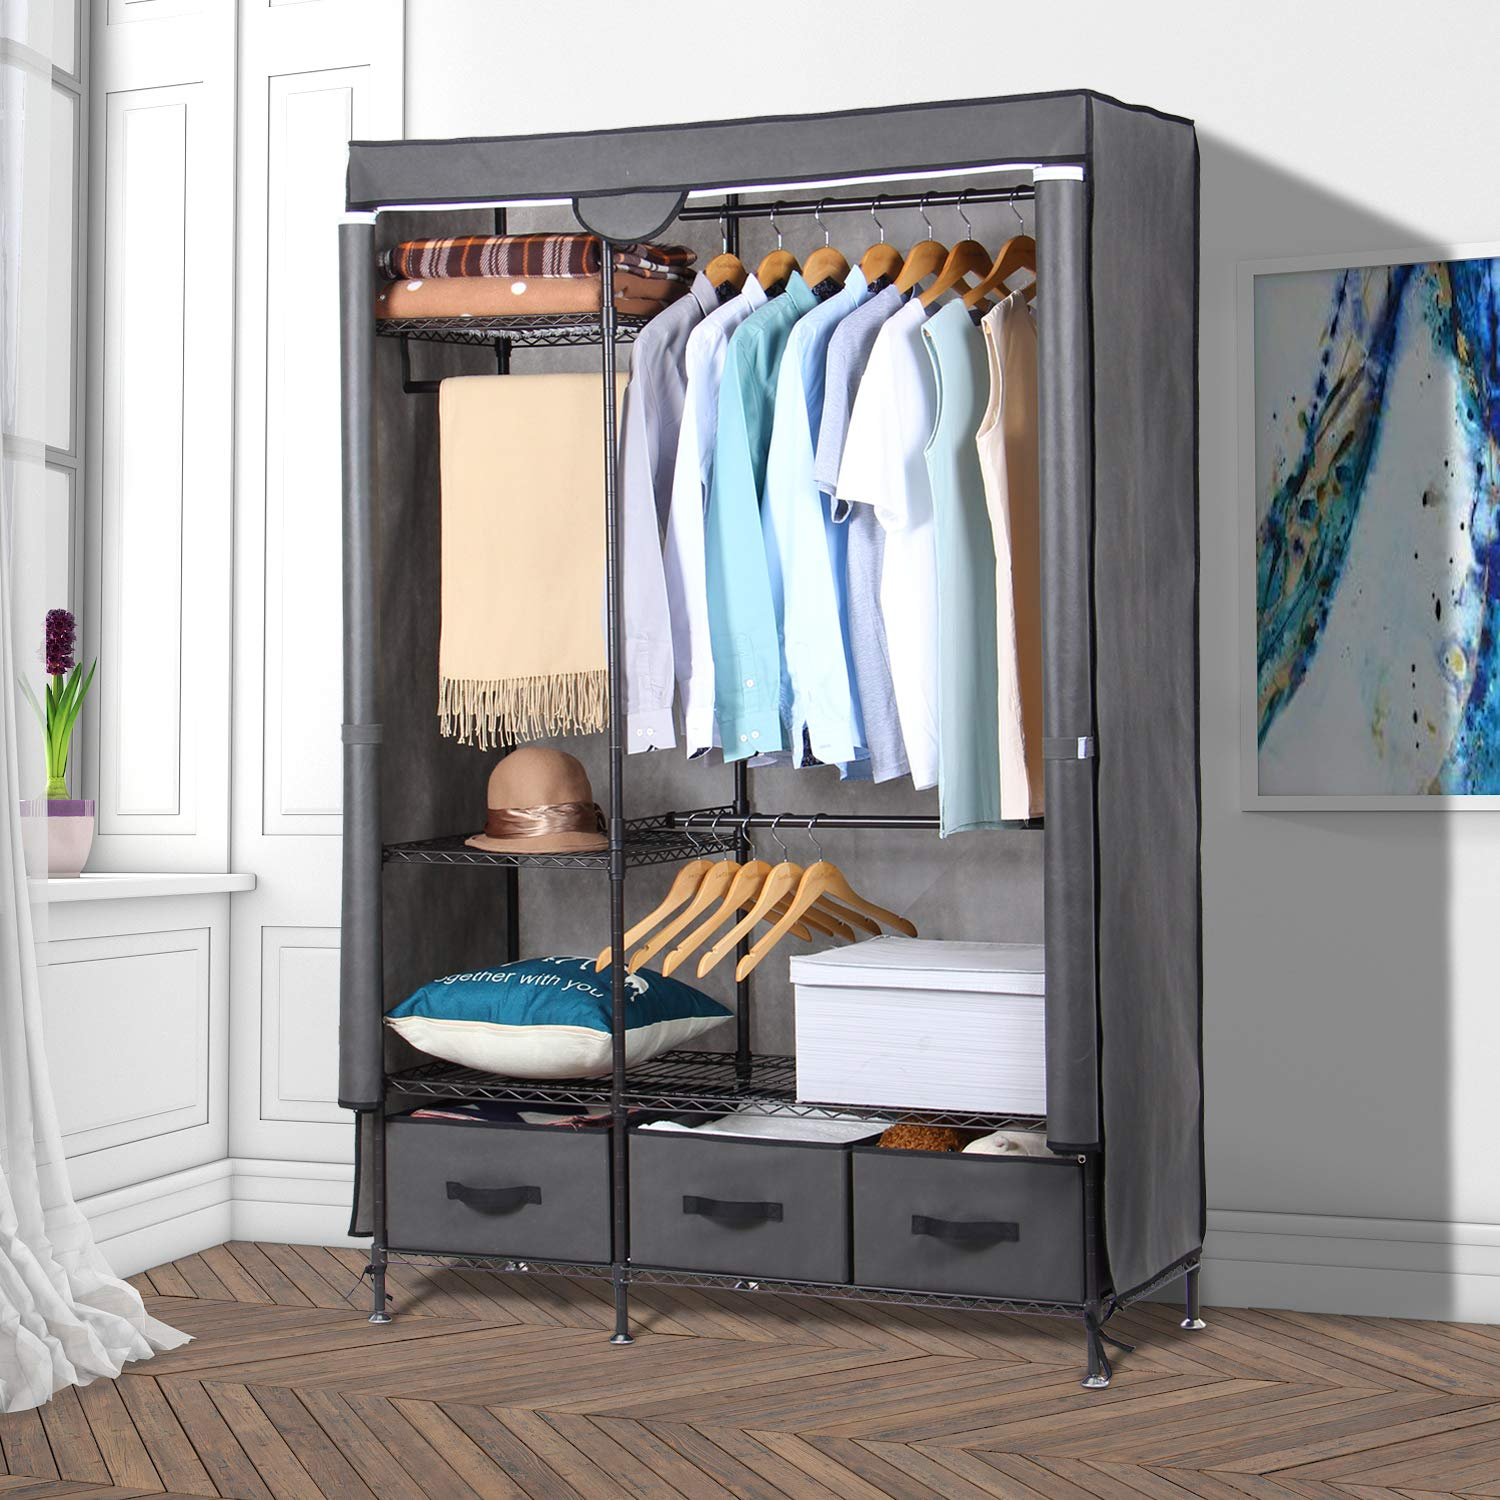 Lifewit Full Metal Closet Organizer Wardrobe Closet Portable Closet Shelves  With Adjustable Legs, Non-woven Fabric Clothes Cover And 3 Drawers, Sturdy